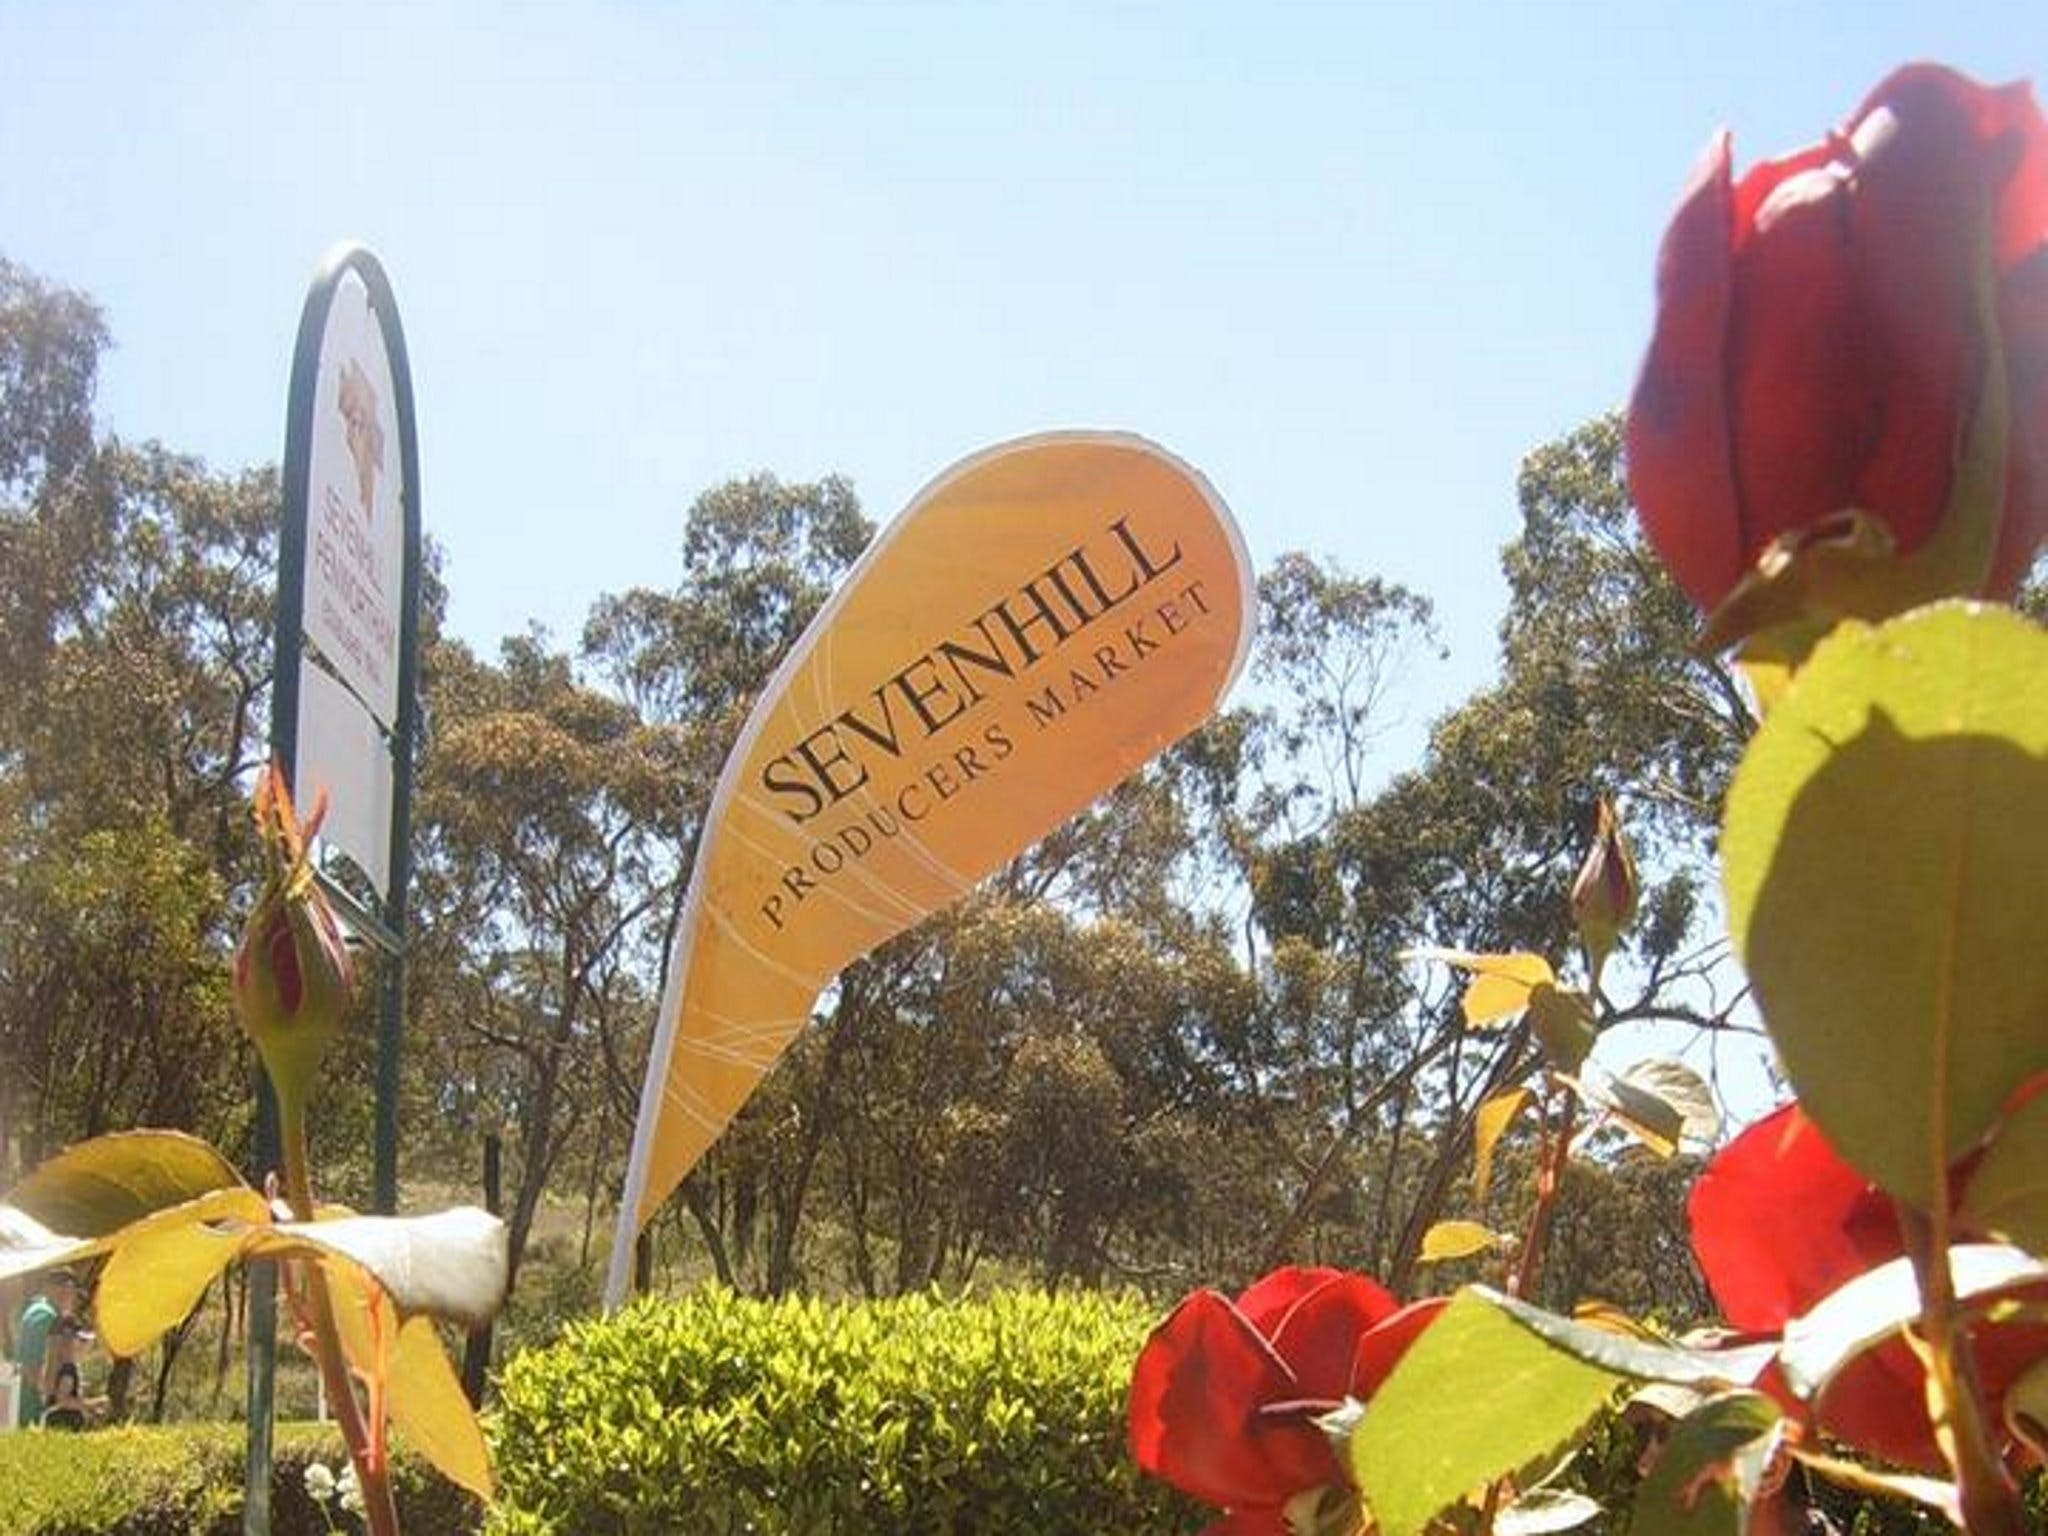 Sevenhill Producers Market - Surfers Gold Coast